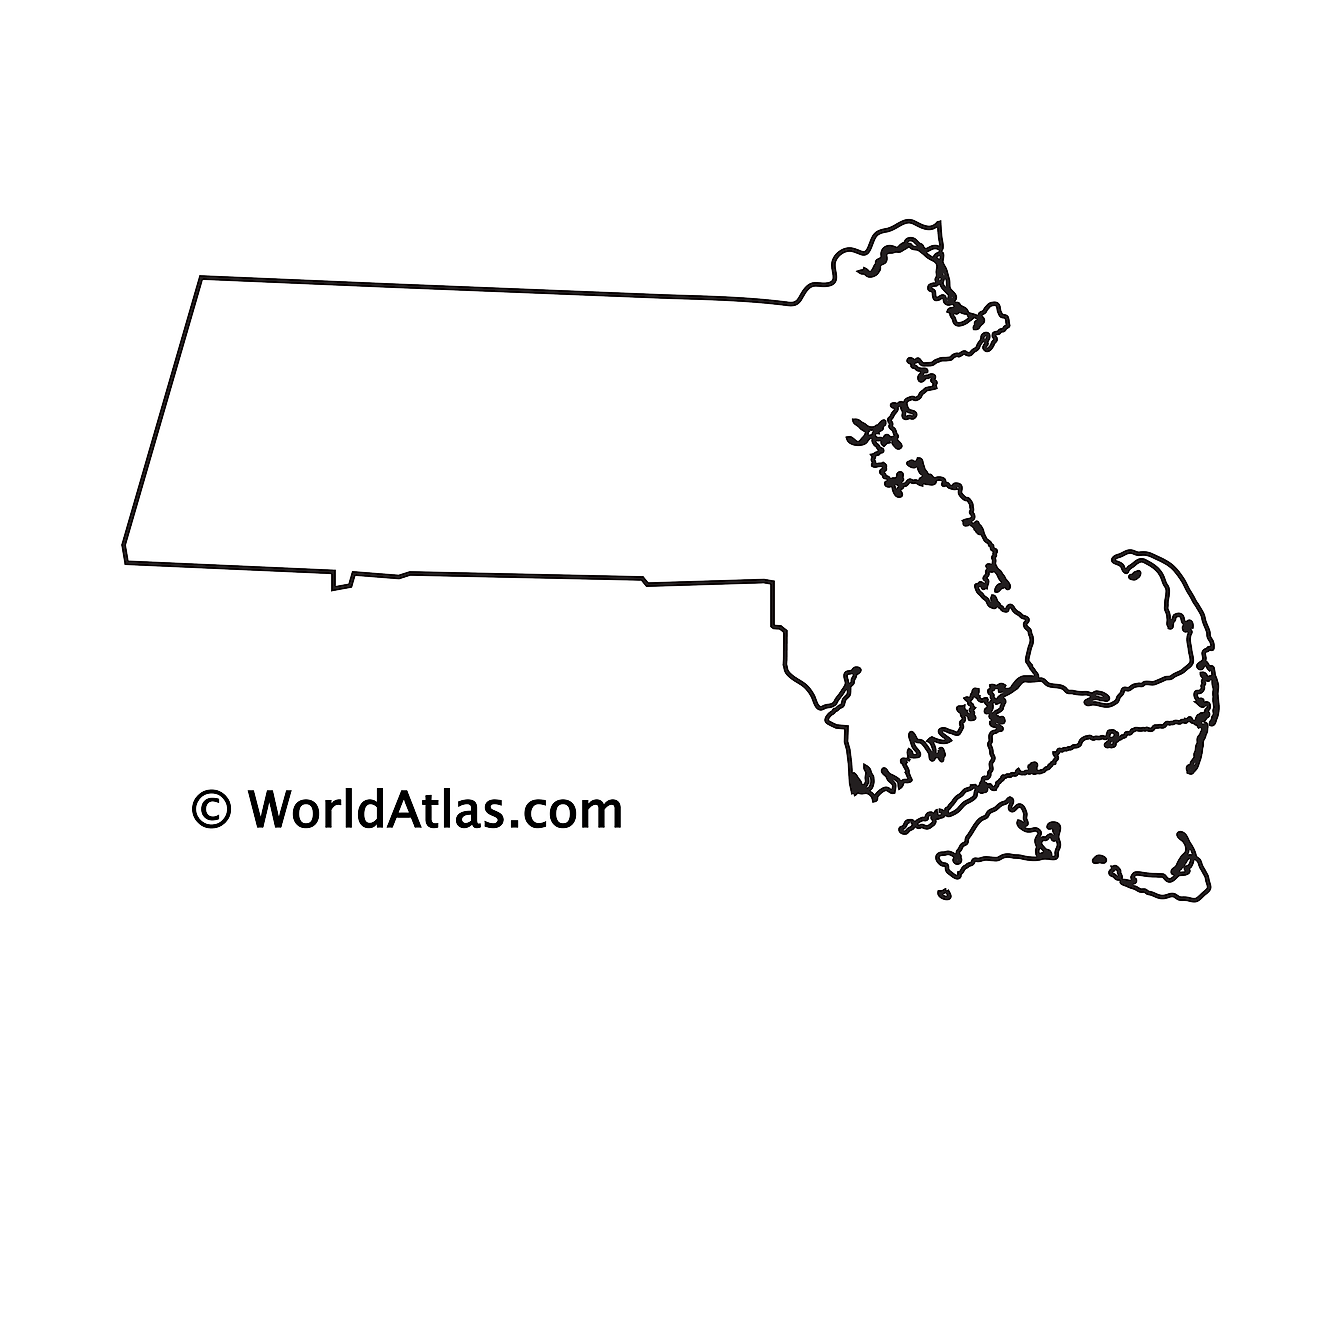 Blank outline map of Massachusetts